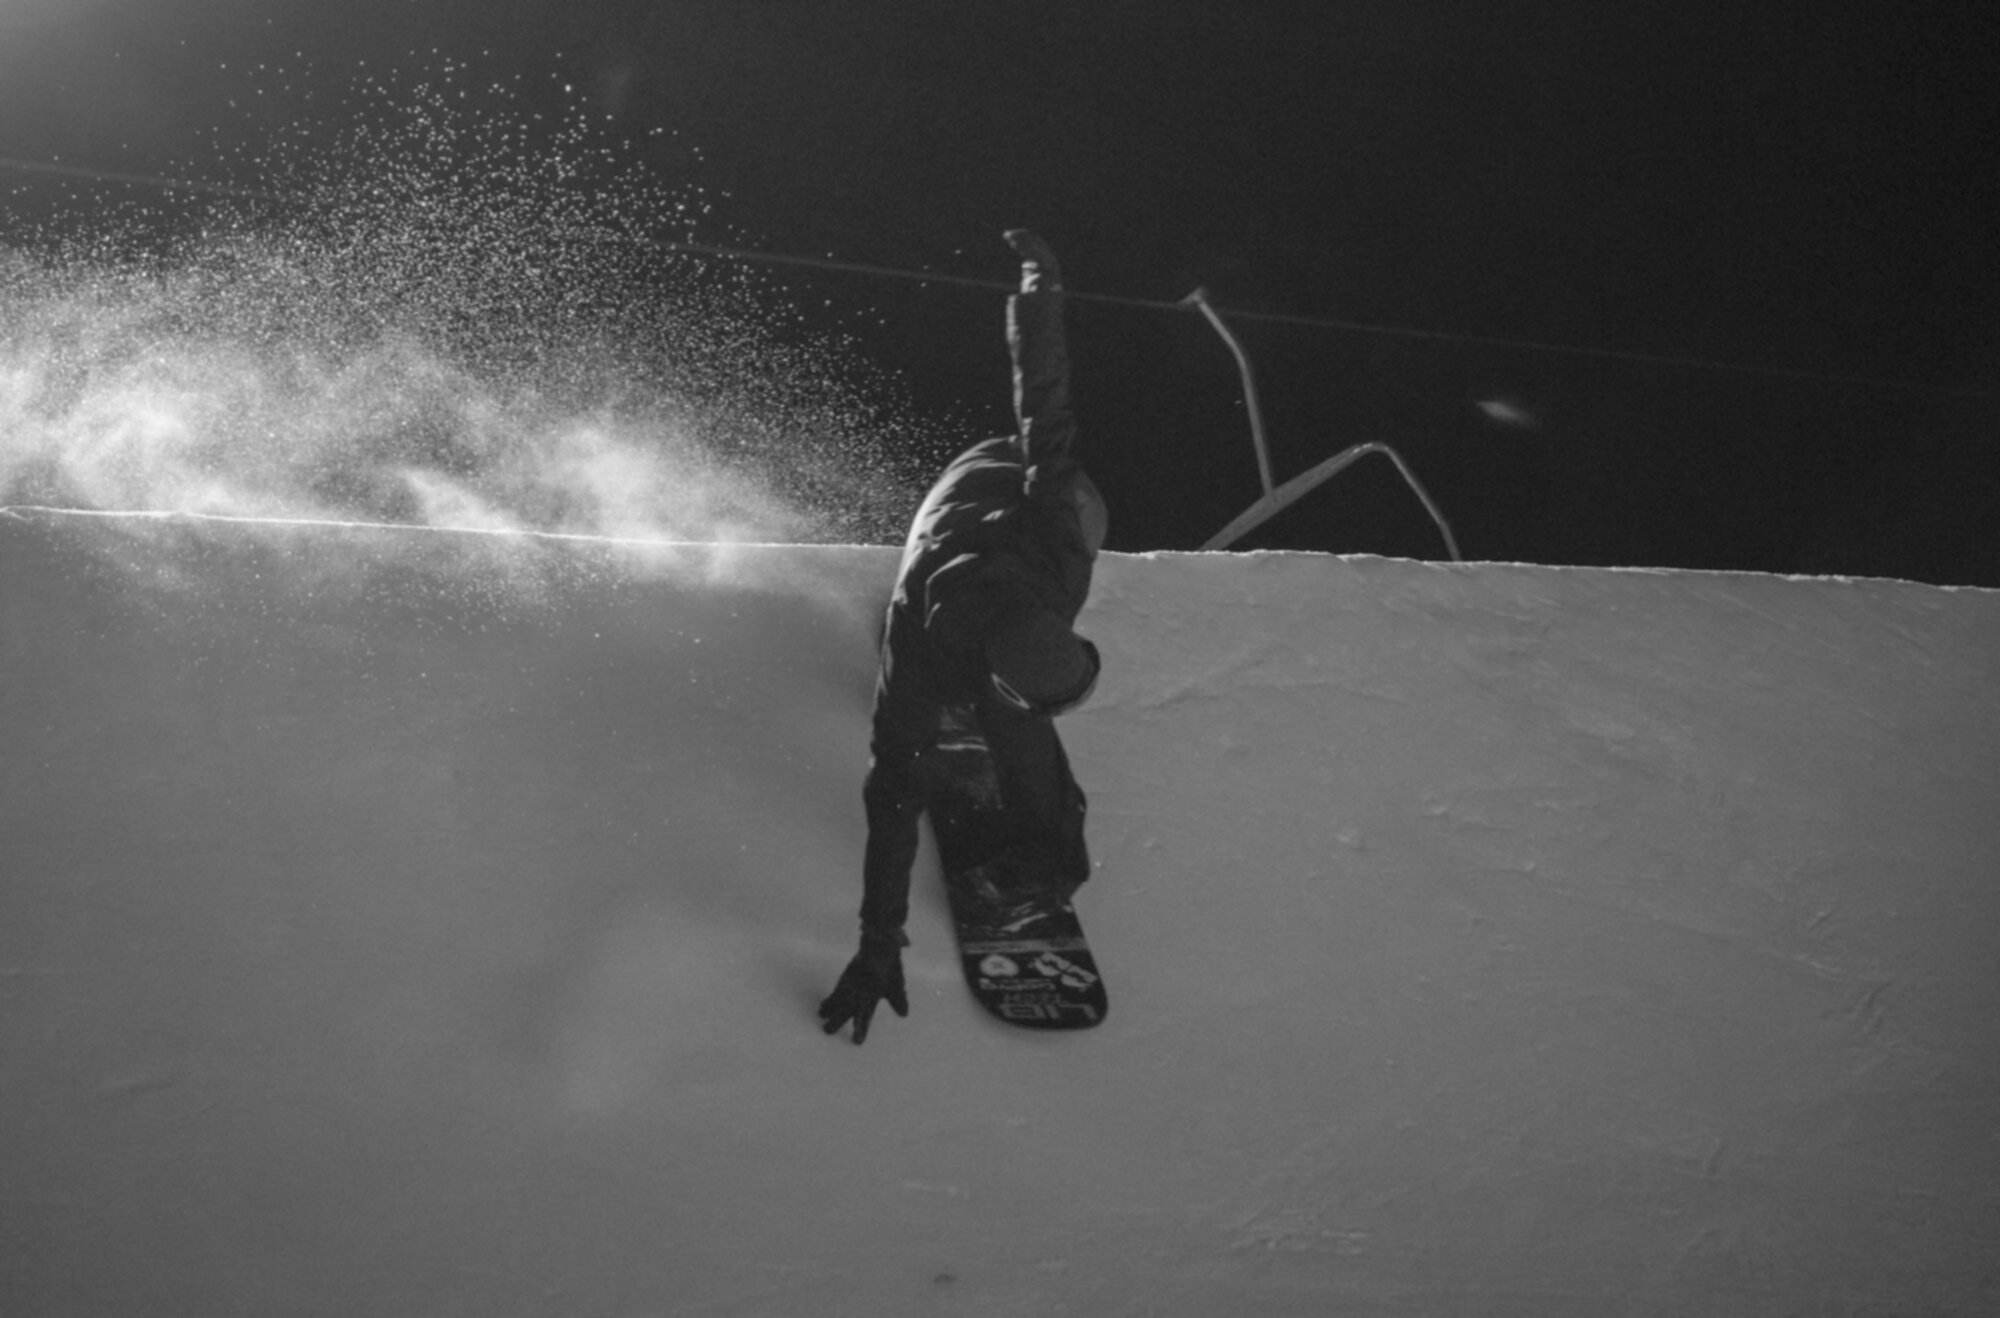 snowboarder on halfpipe